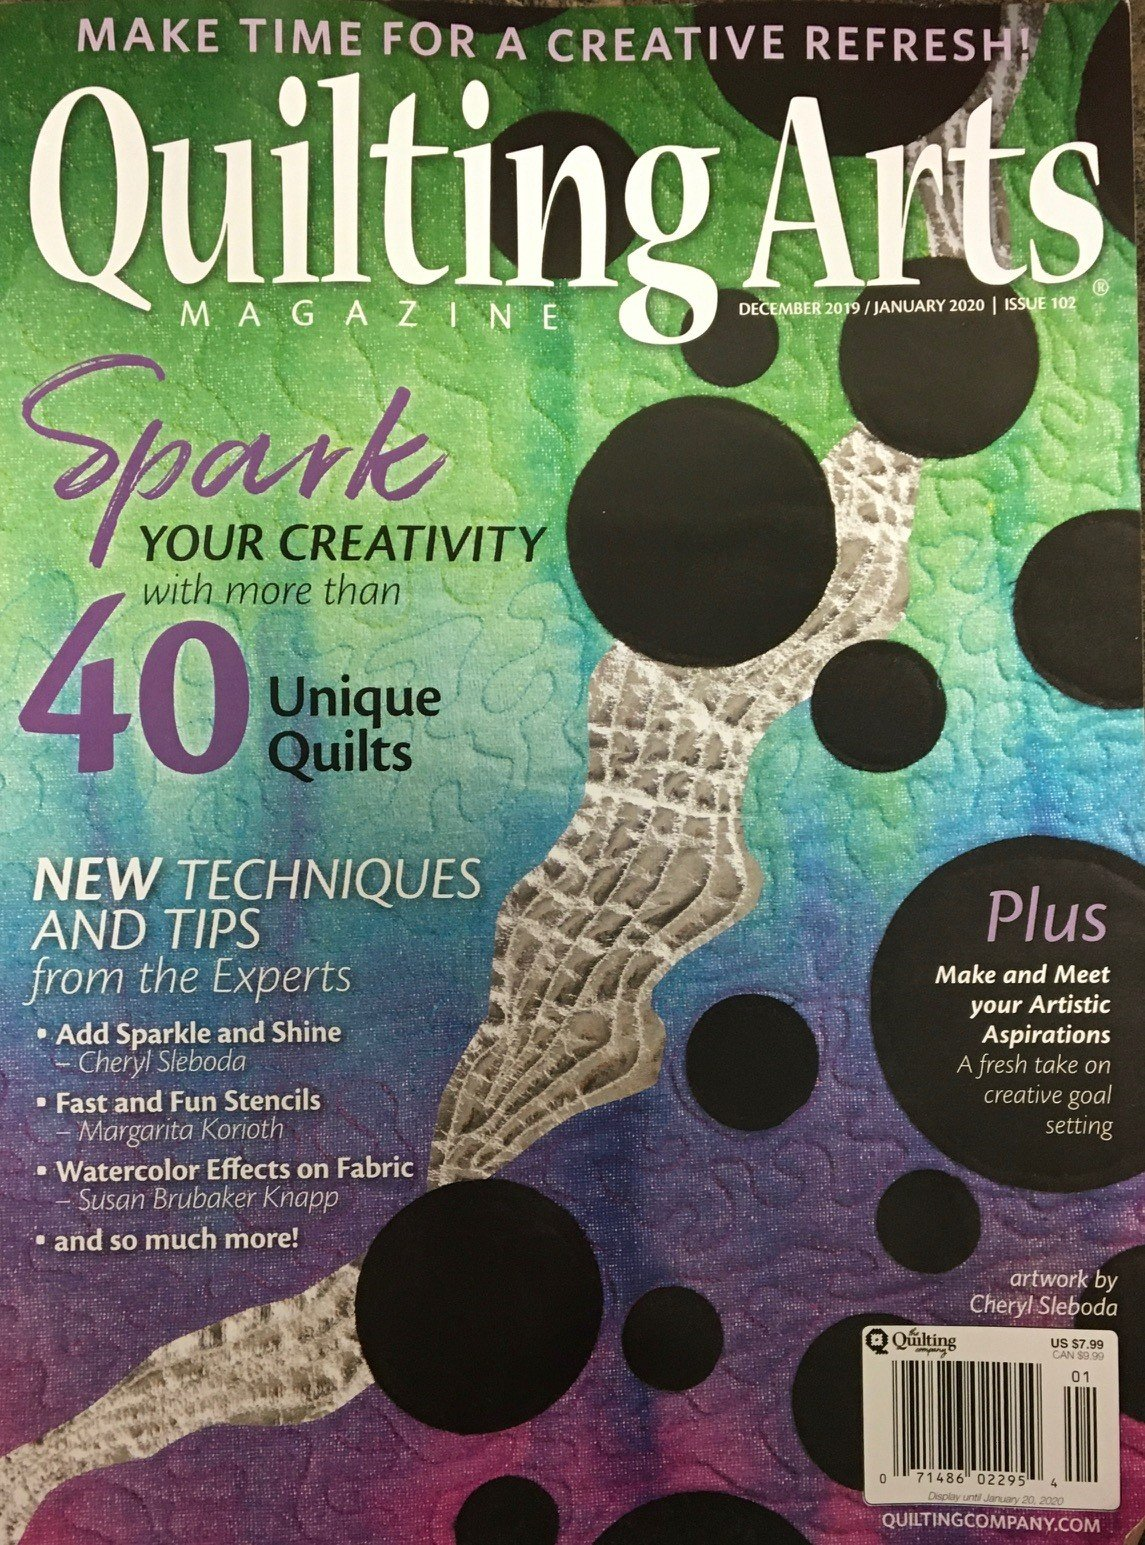 Quilting Arts Dec 2019/Jan 2020 Issue 102